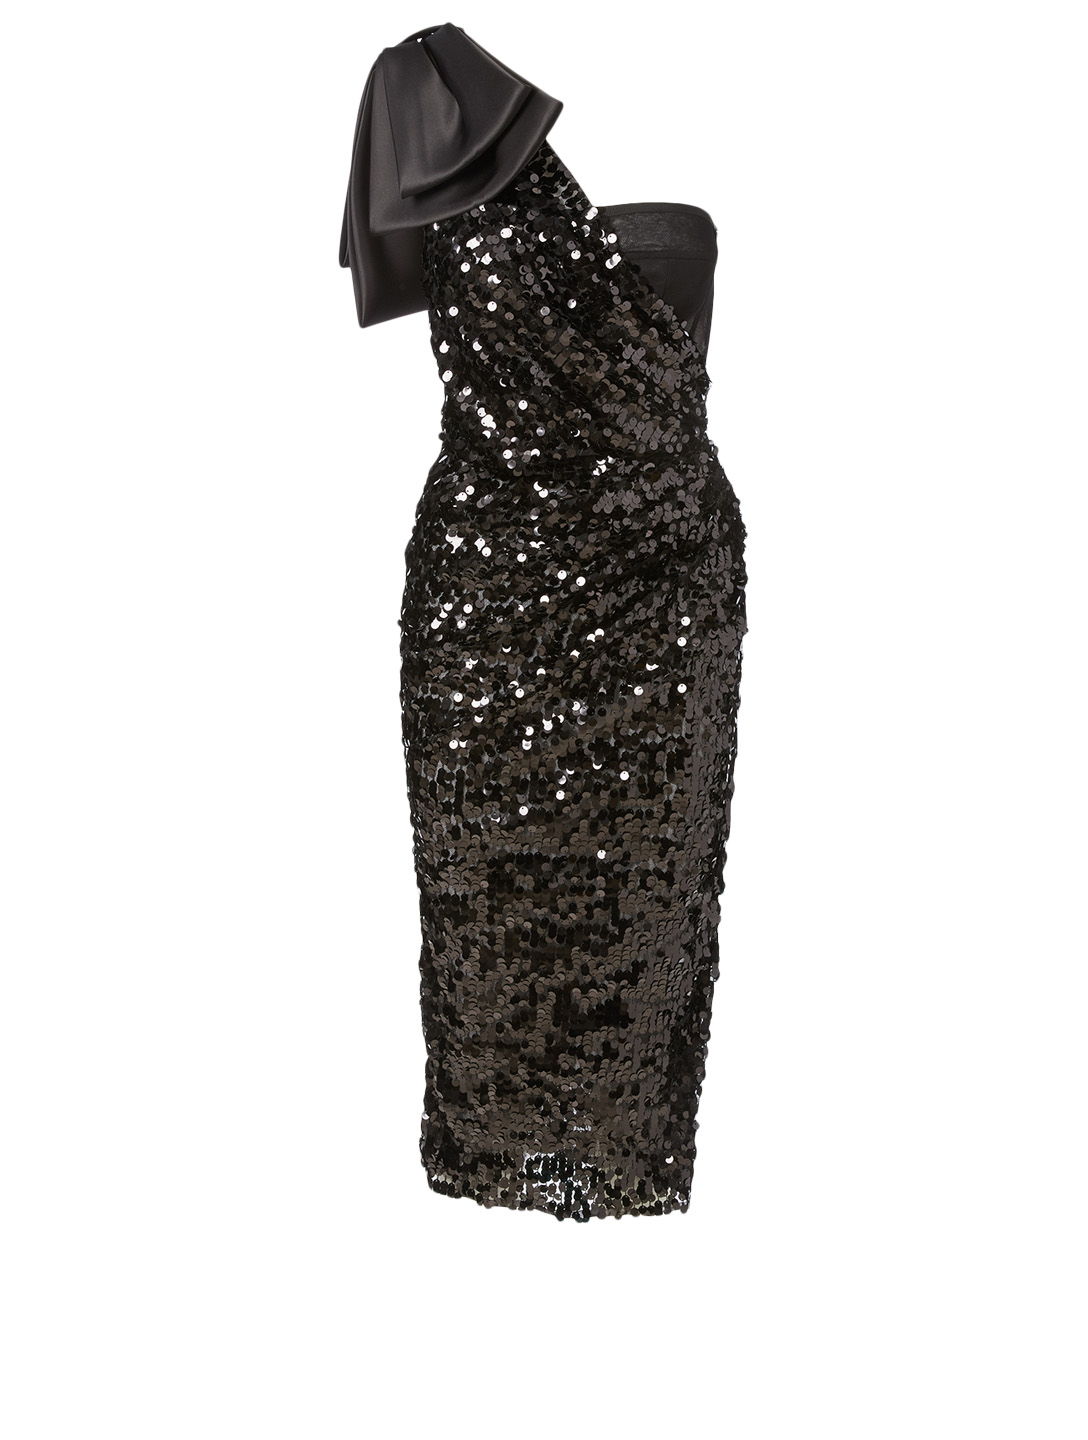 DOLCE & GABBANA Silk-Blend Sequin Dress With Bow Women's Black